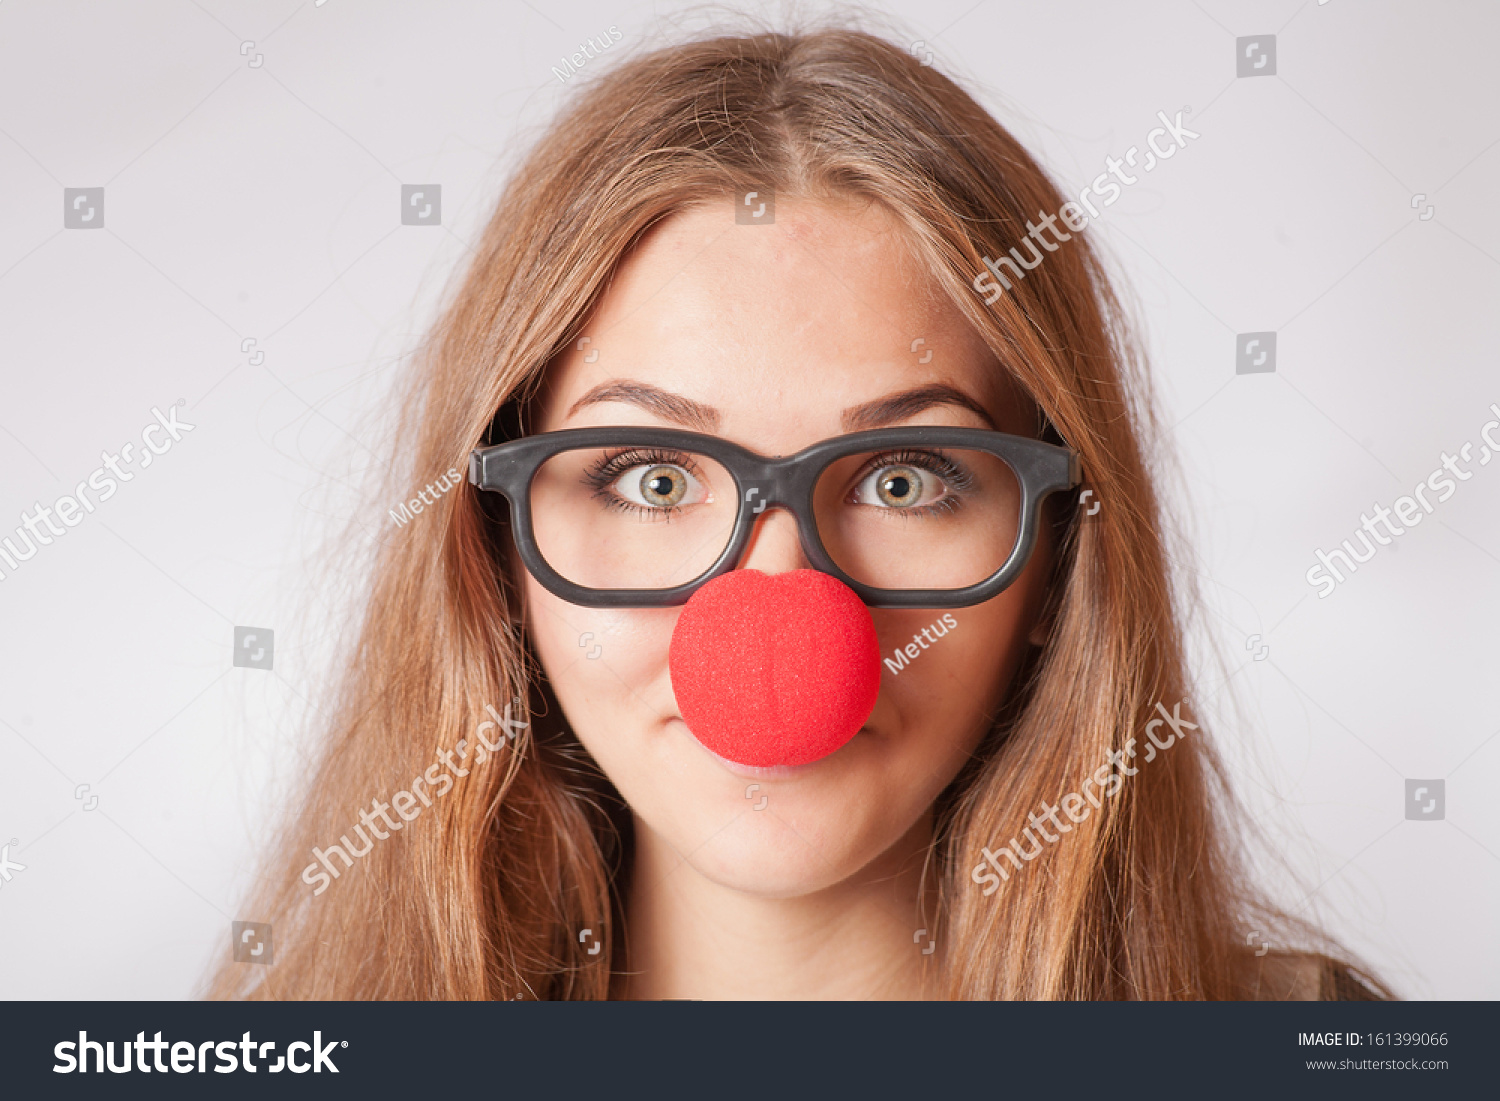 Close-up portrait of a happy 20s girl with red clown nose. Funny portrait of young woman in party glasses